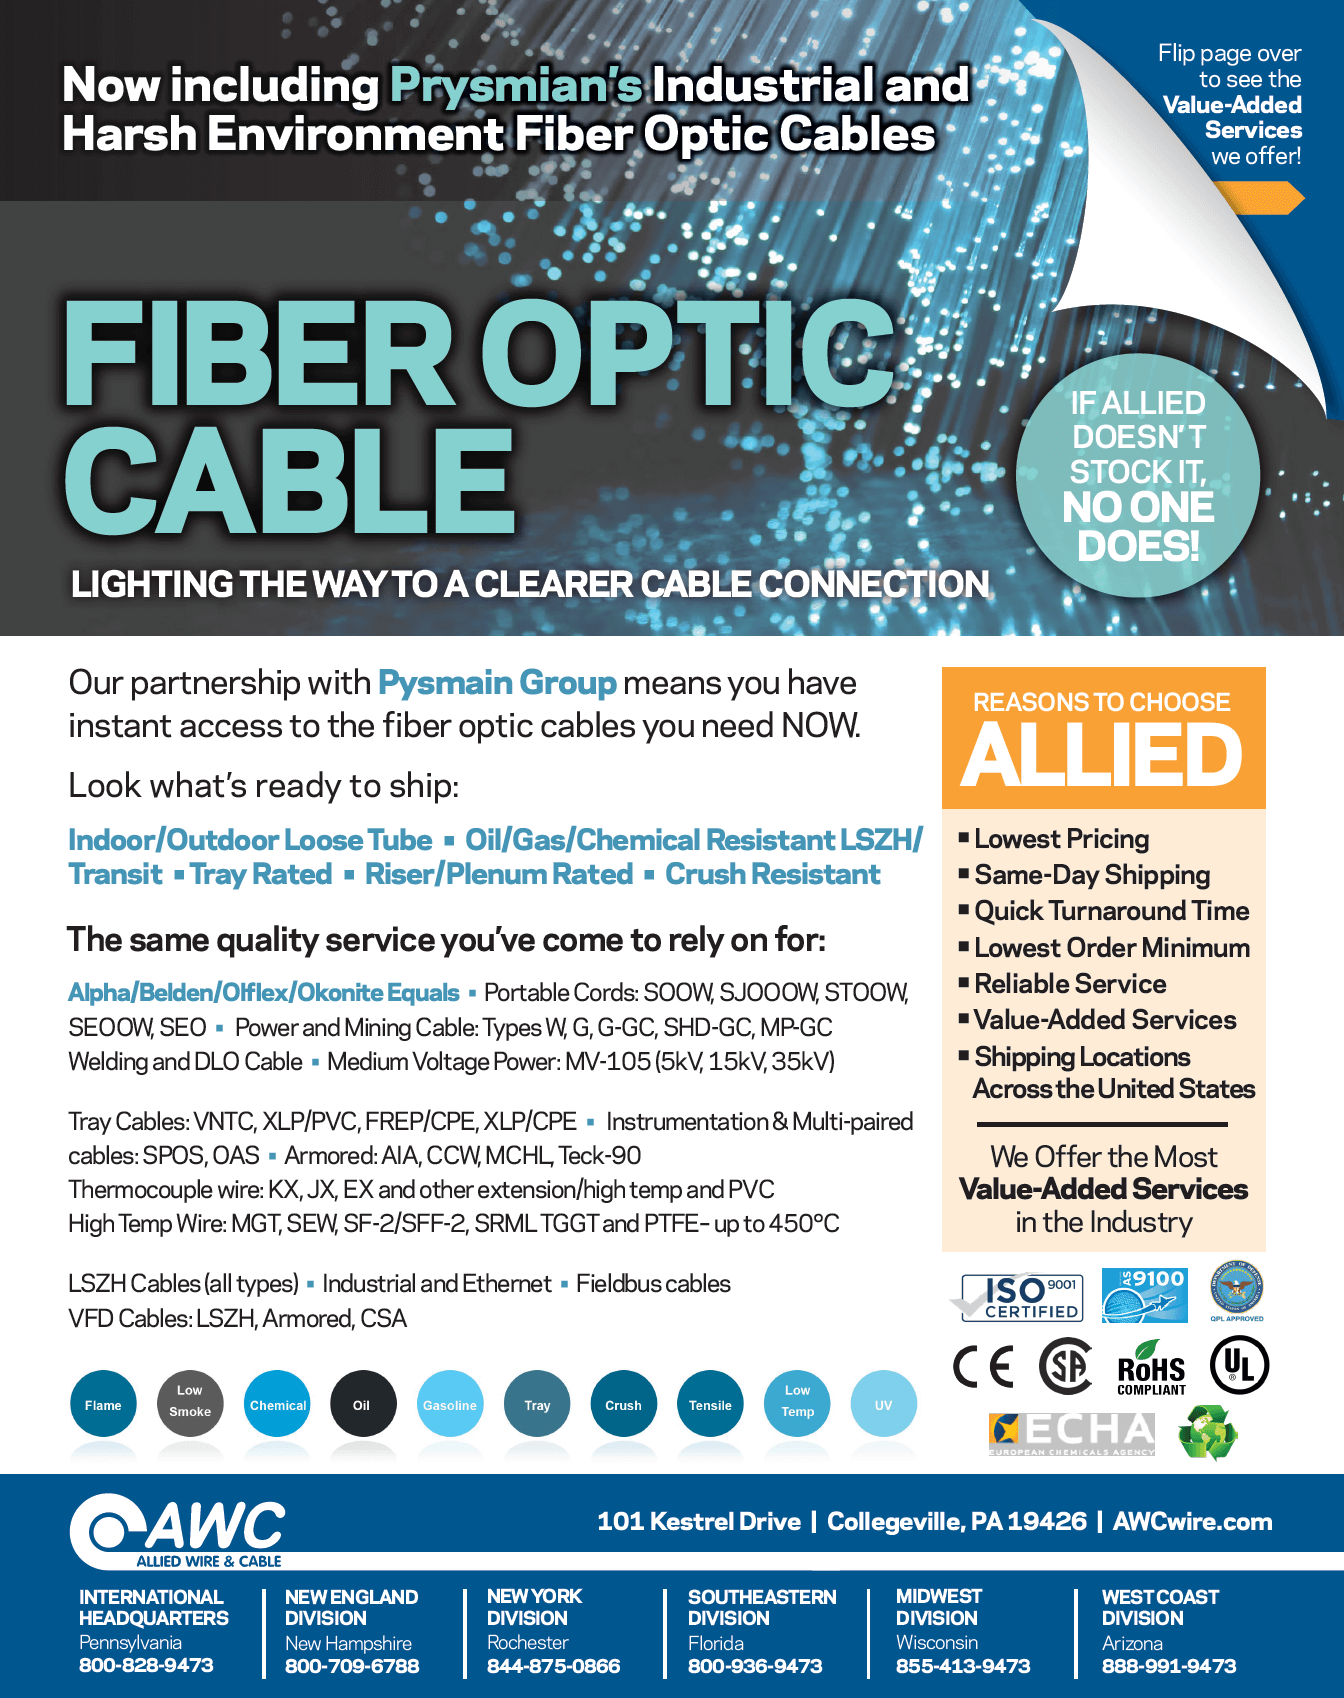 Fiber Optic Cable Line Card from Allied Wire & Cable